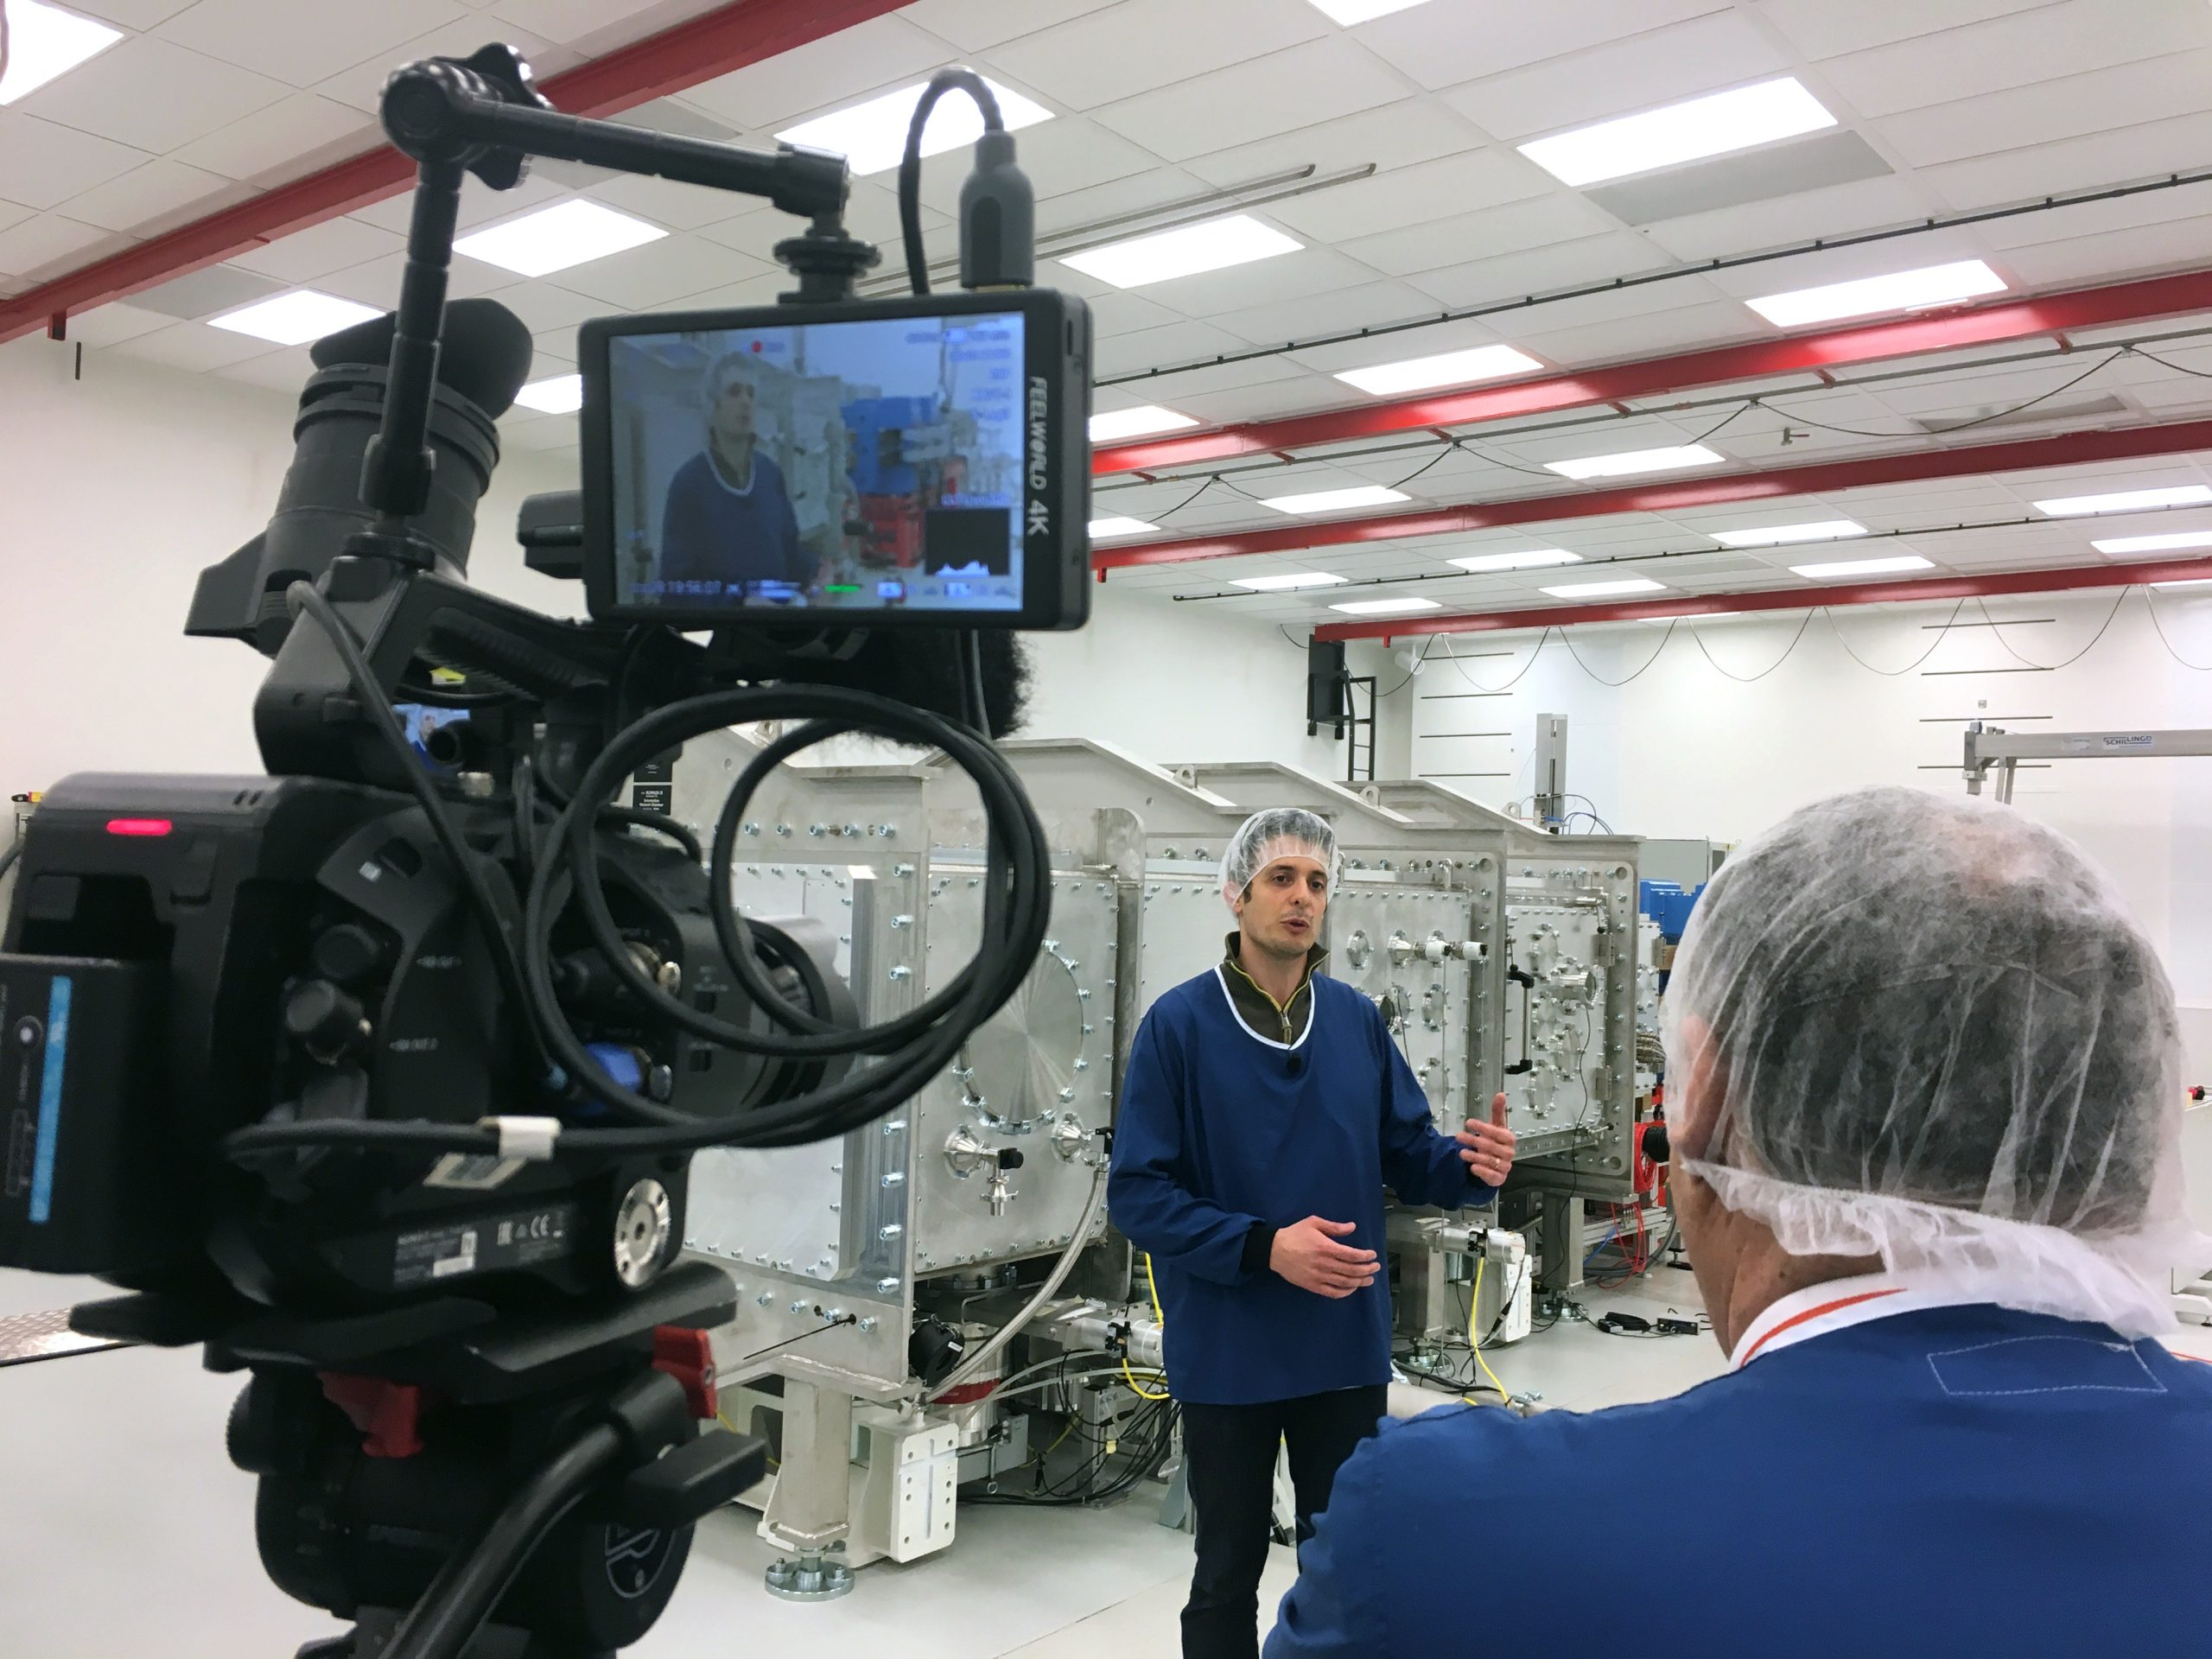 video production company in Italy